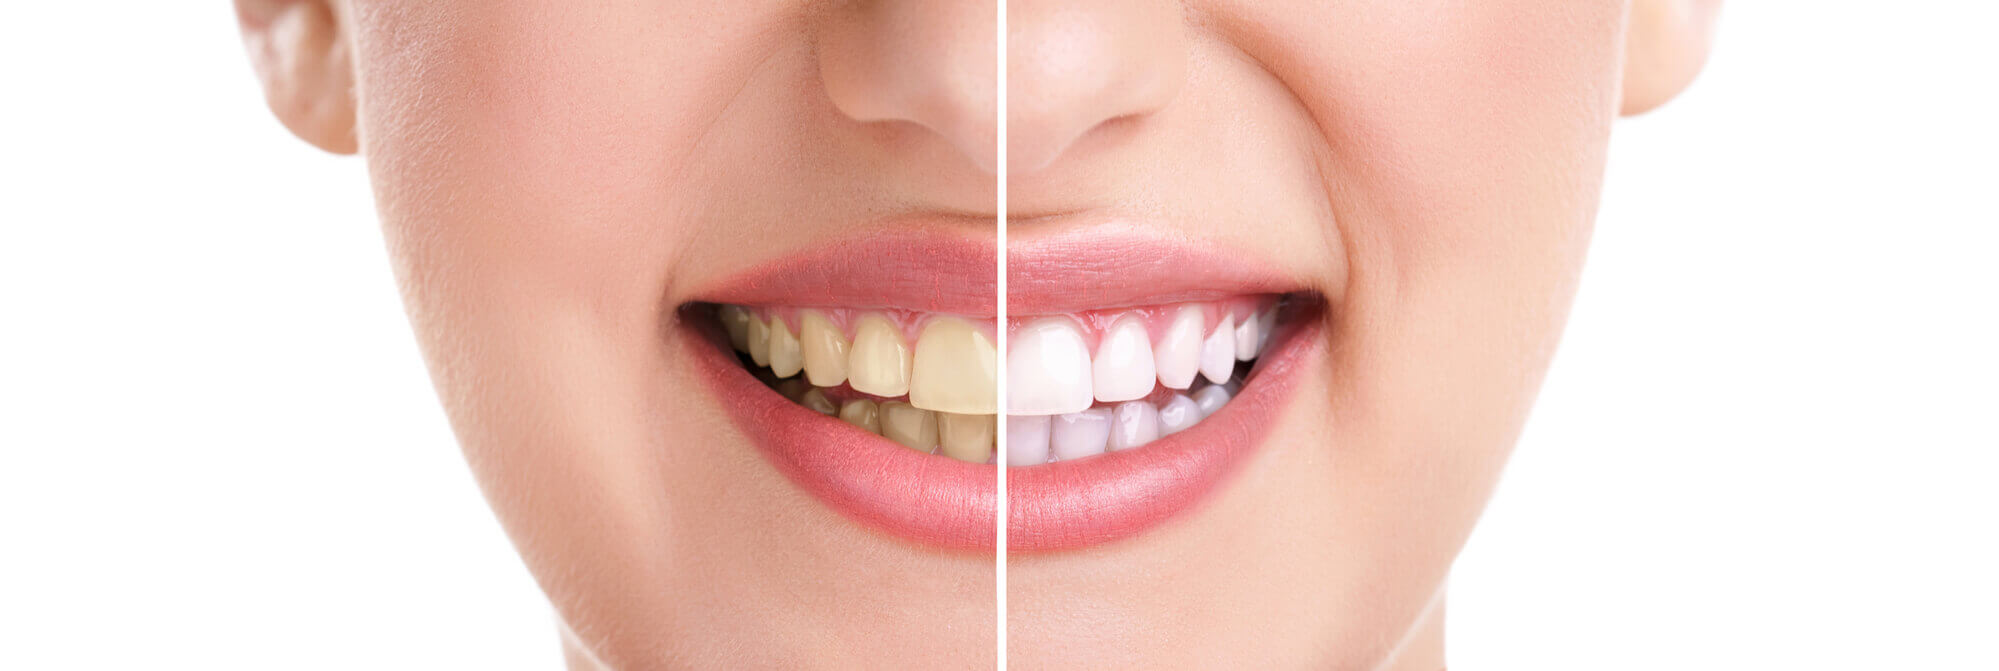 Before and after photos of teeth whitening at Aventura Dentist